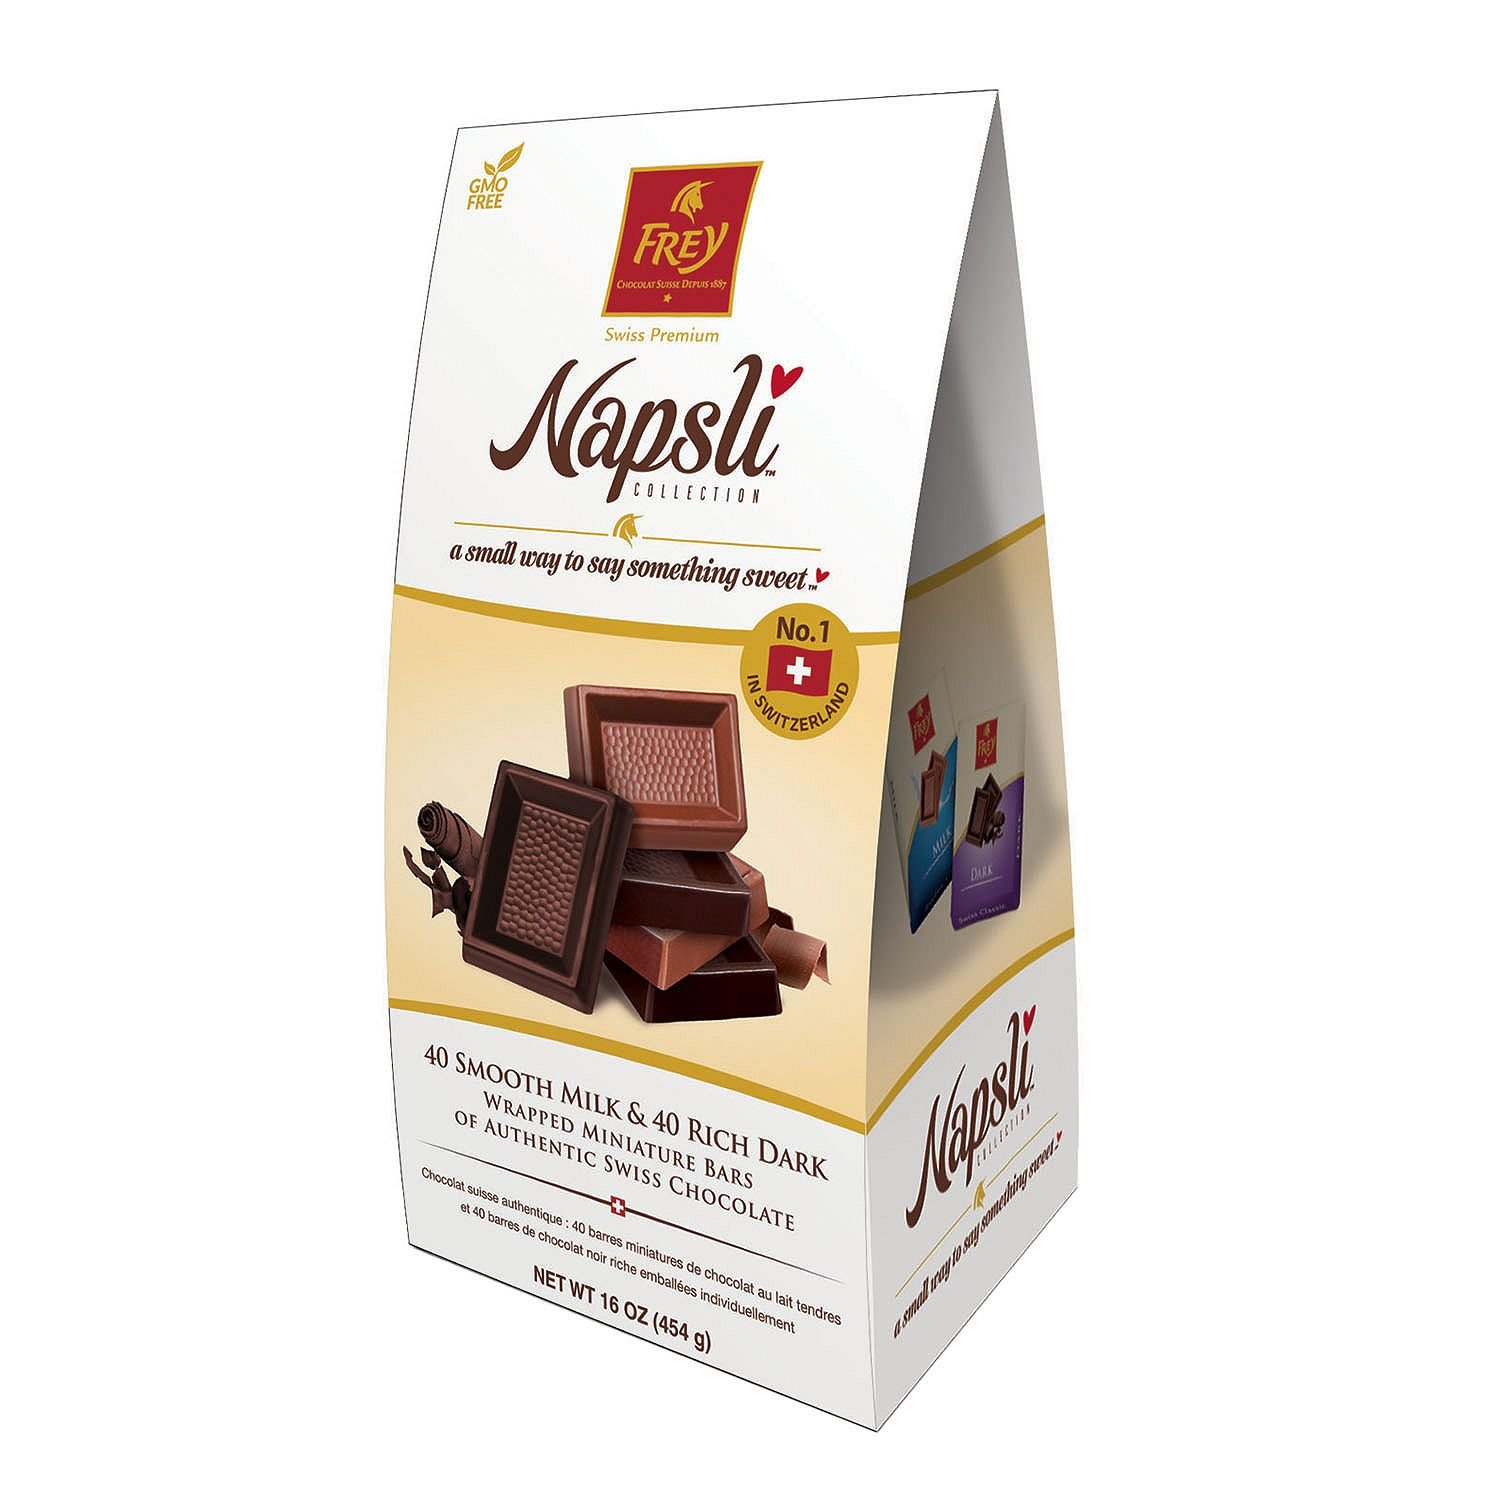 Swiss chocolate: brands, tastes, reviews. The most delicious chocolate 39